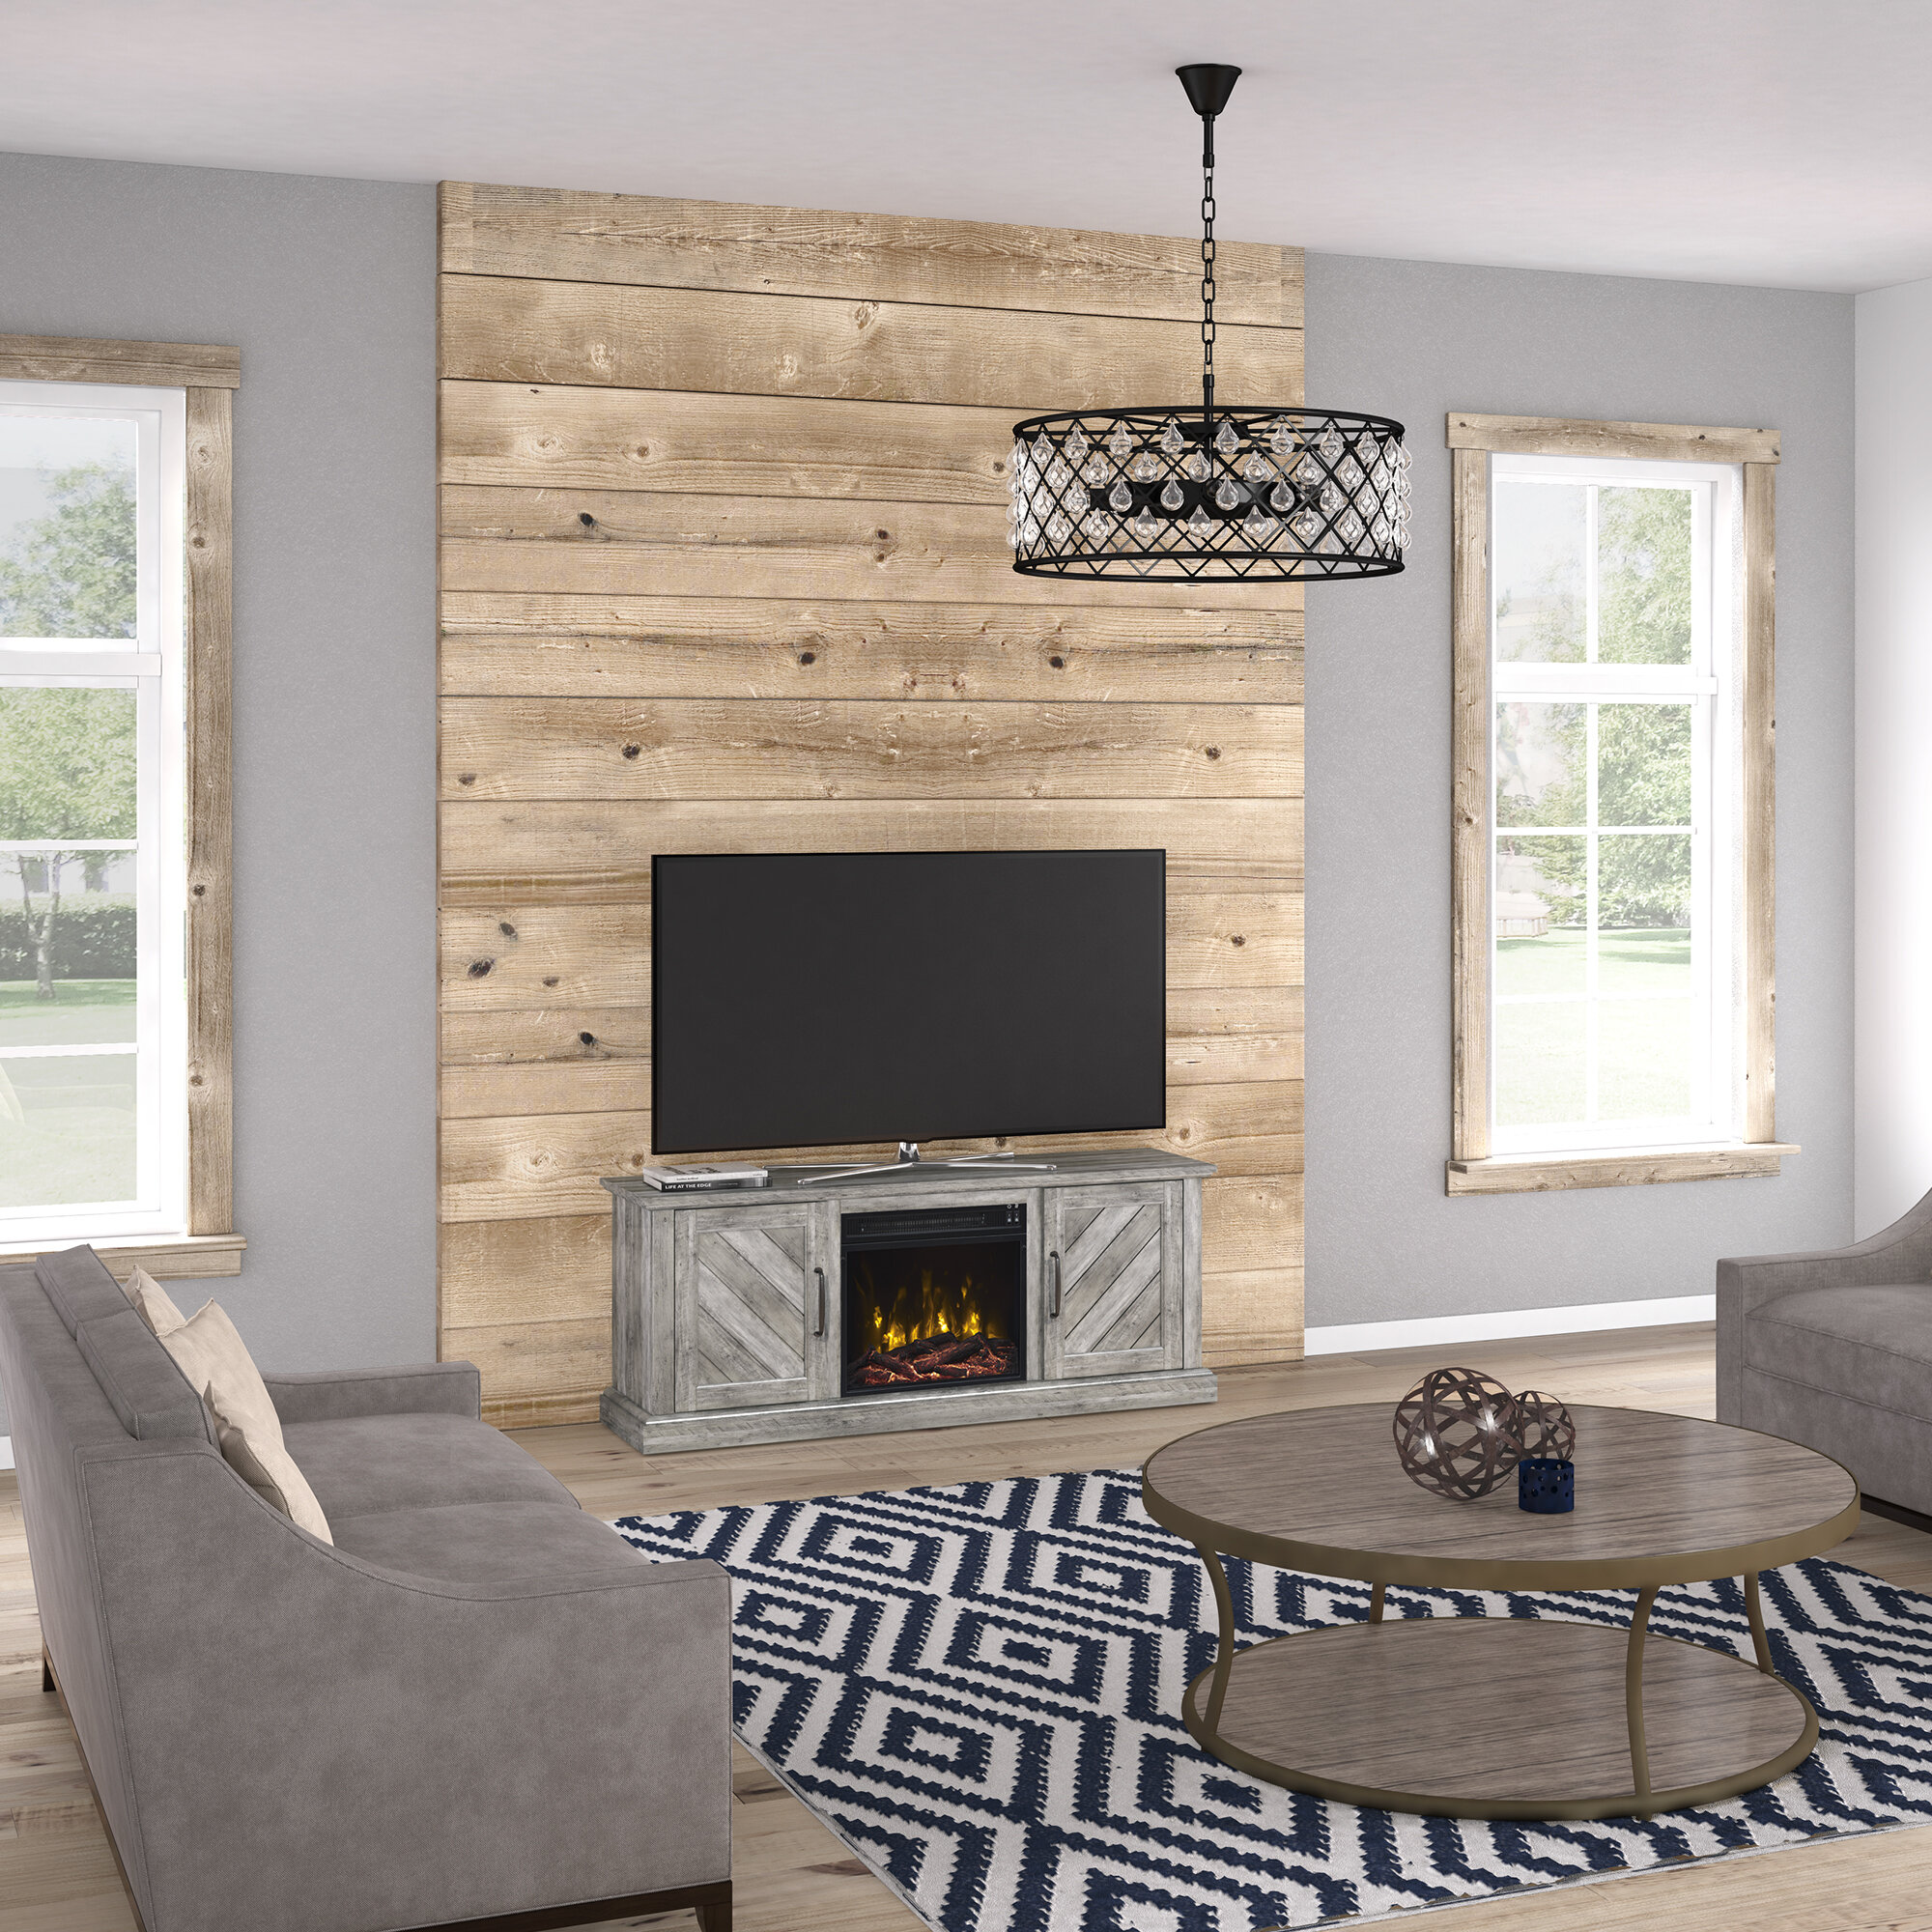 room patrick furniture wade decorating fireplaces tips photos designs bedroom guest demattei mantel fireplace dave and best ideas cozy